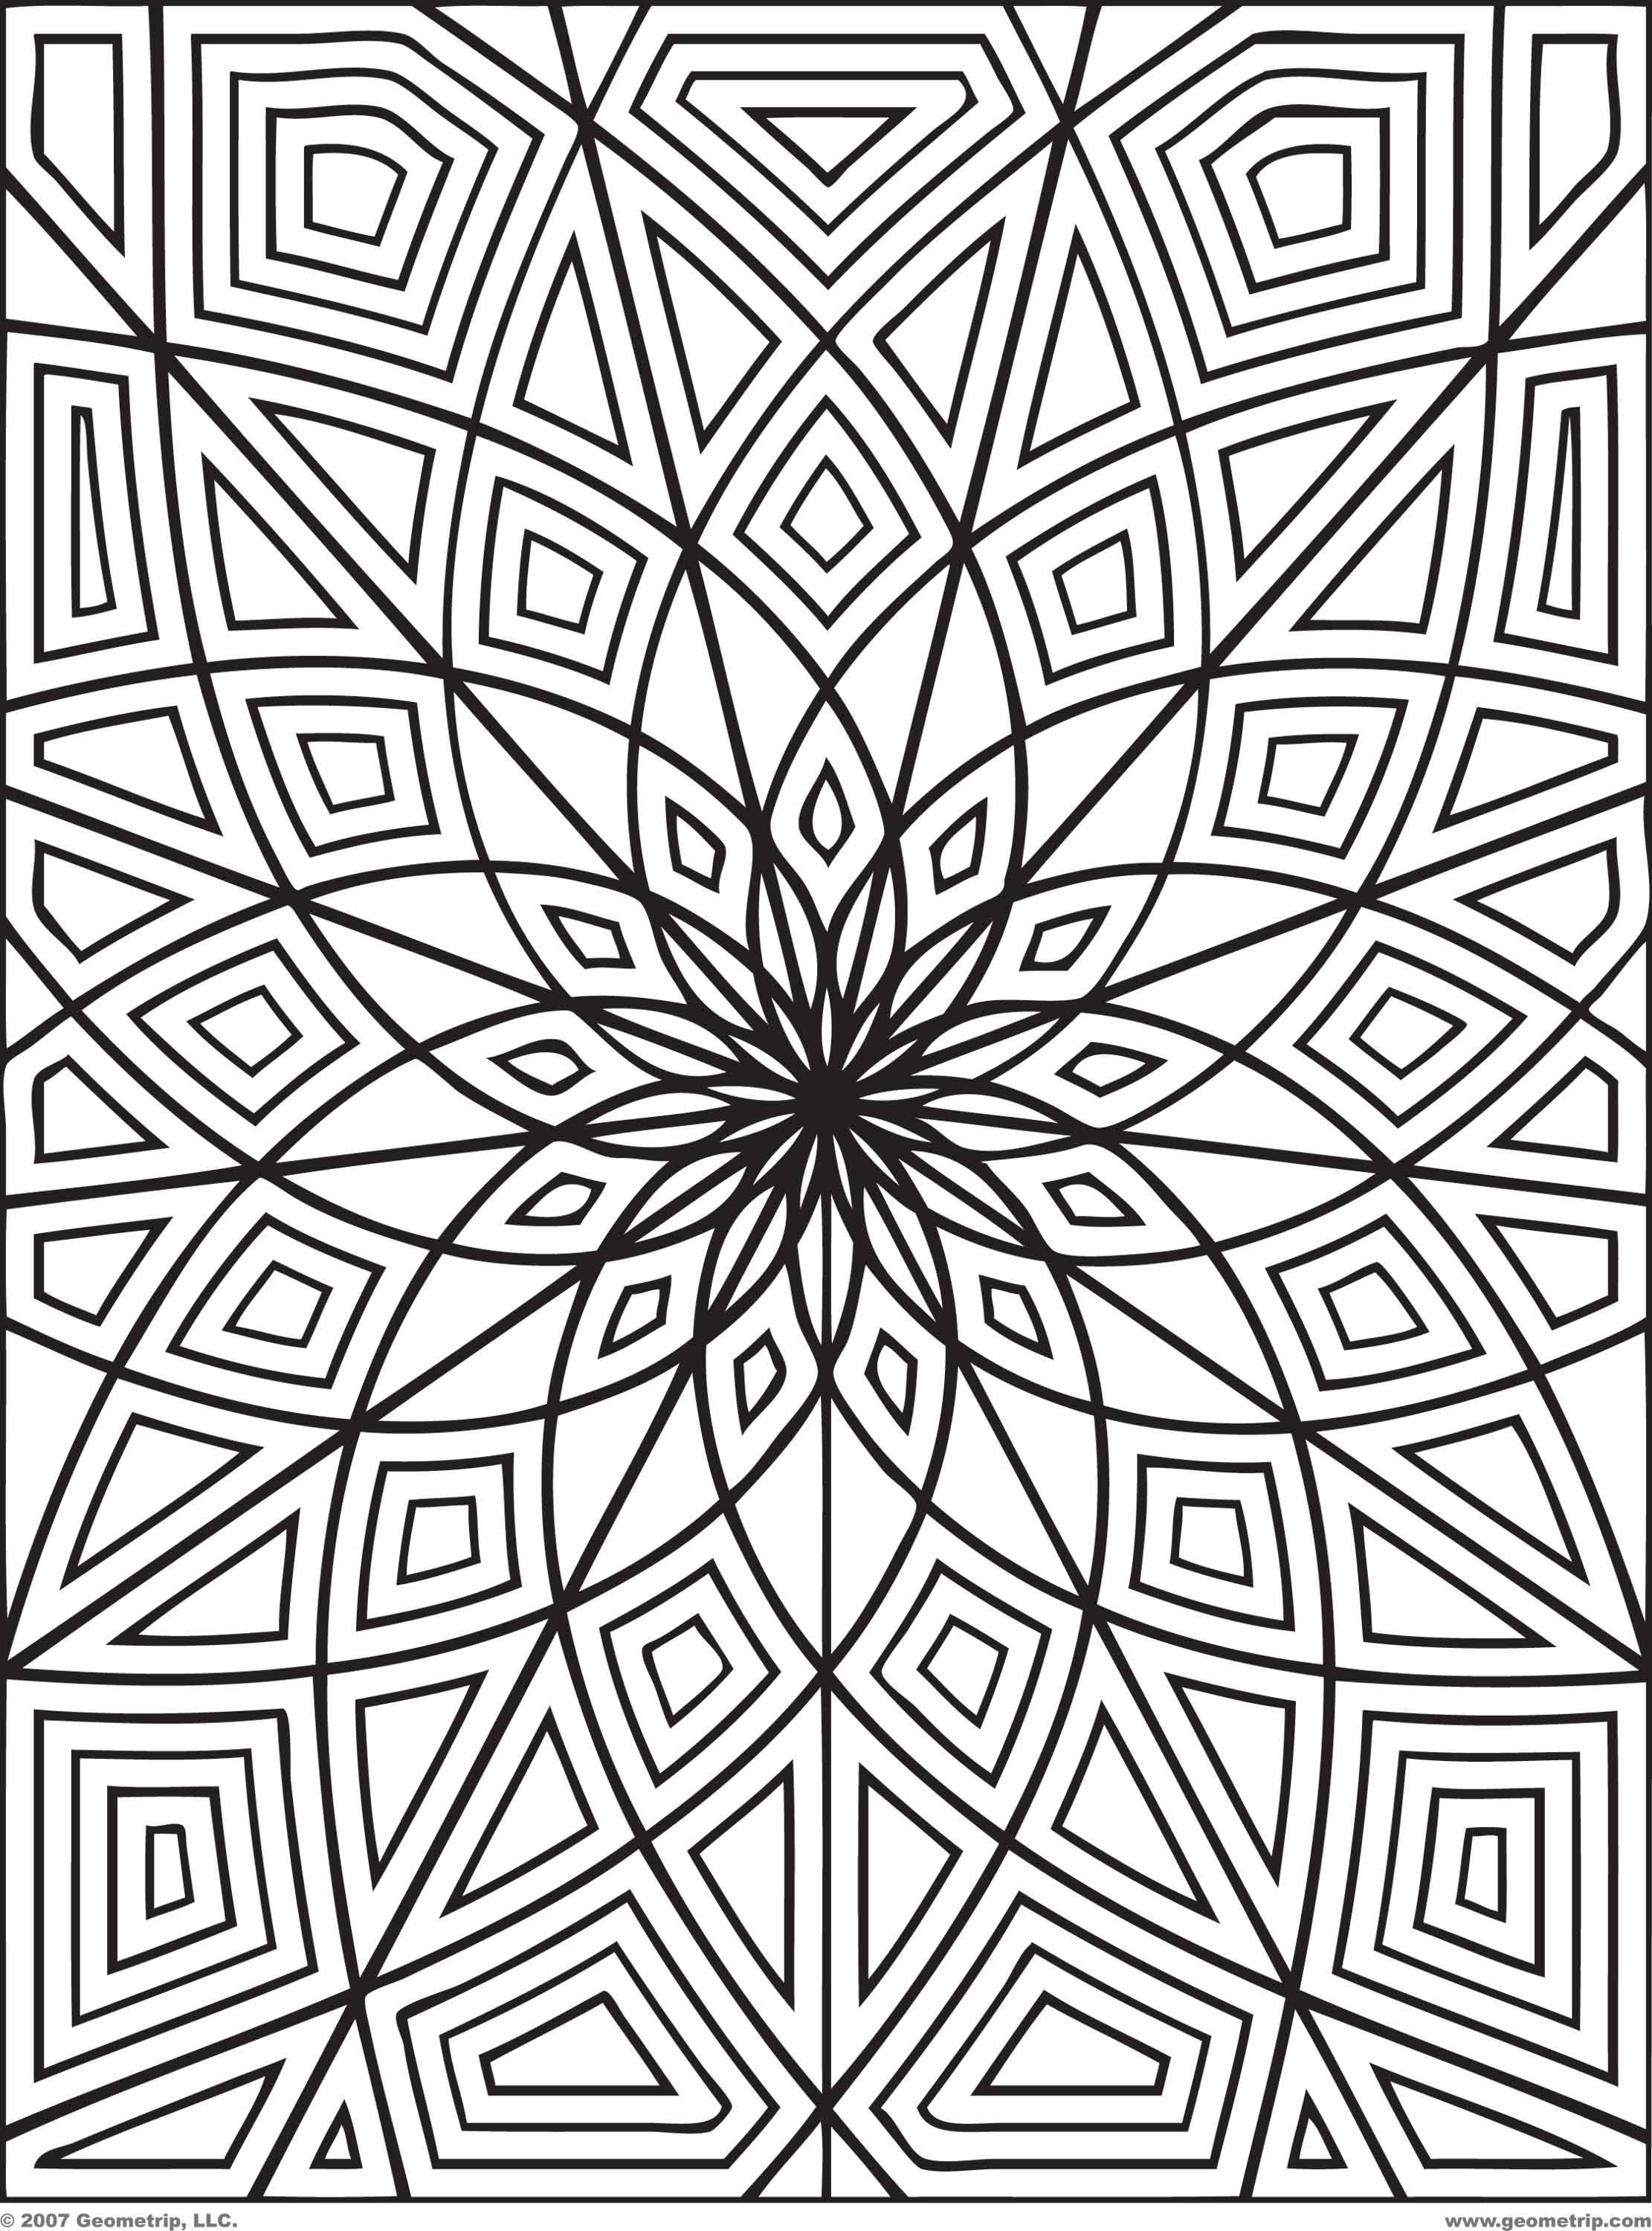 Detailed Coloring Pages – Printable Adult Coloring Page